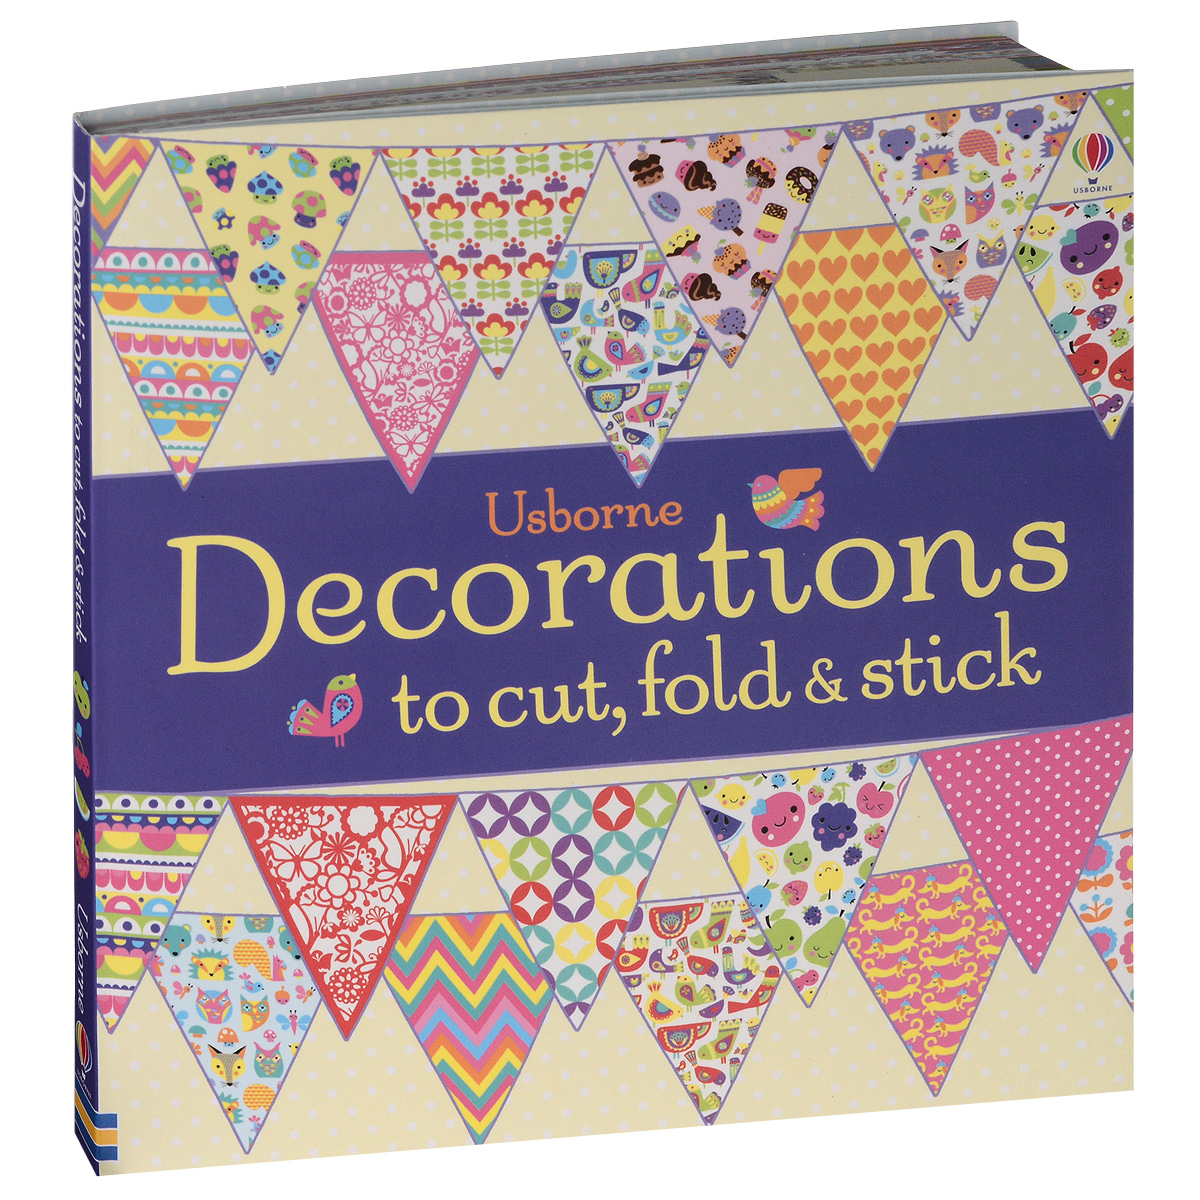 Decorations to Cut, Fold and Stick irresistible